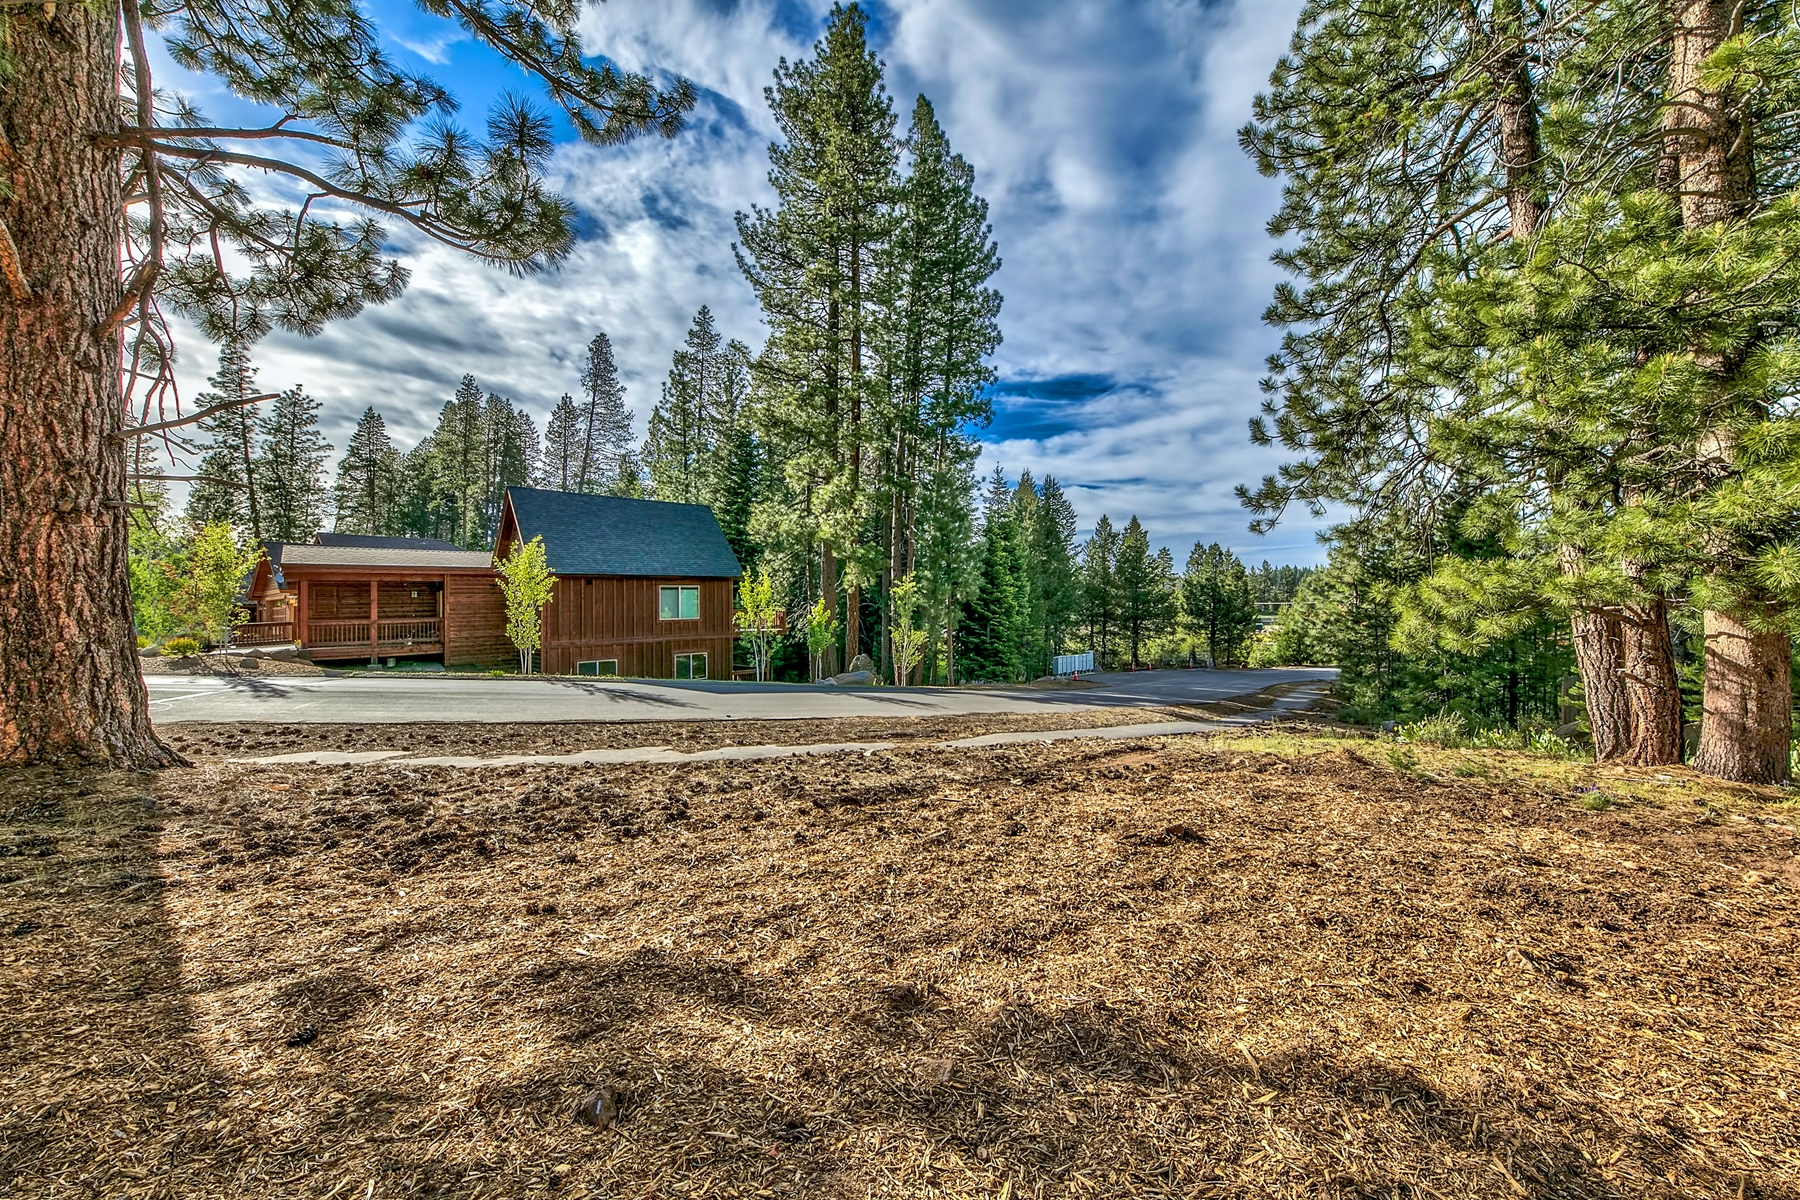 Additional photo for property listing at 000 Winter Creek Loop, Truckee, CA 96161 000 Winter Creek Loop 特拉基, 加利福尼亚州 96161 美国